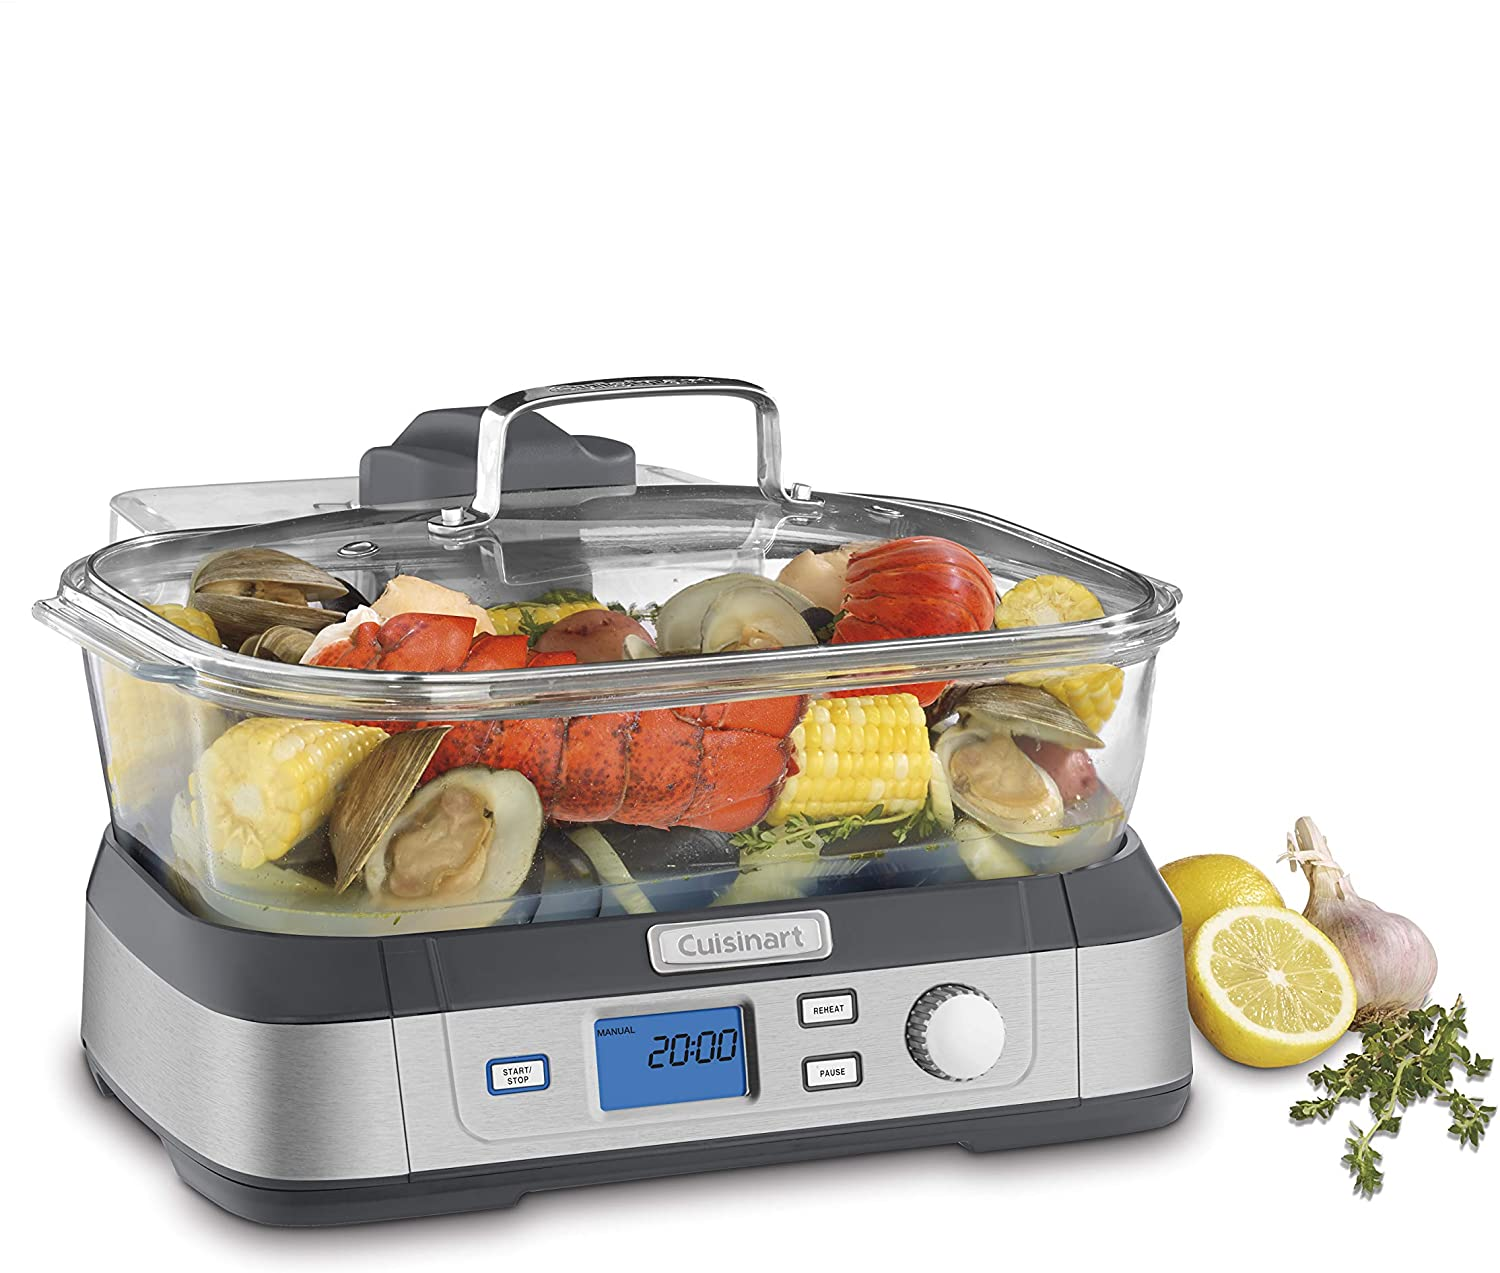 Cuisinart Digital STM-1000 Glass Steamer